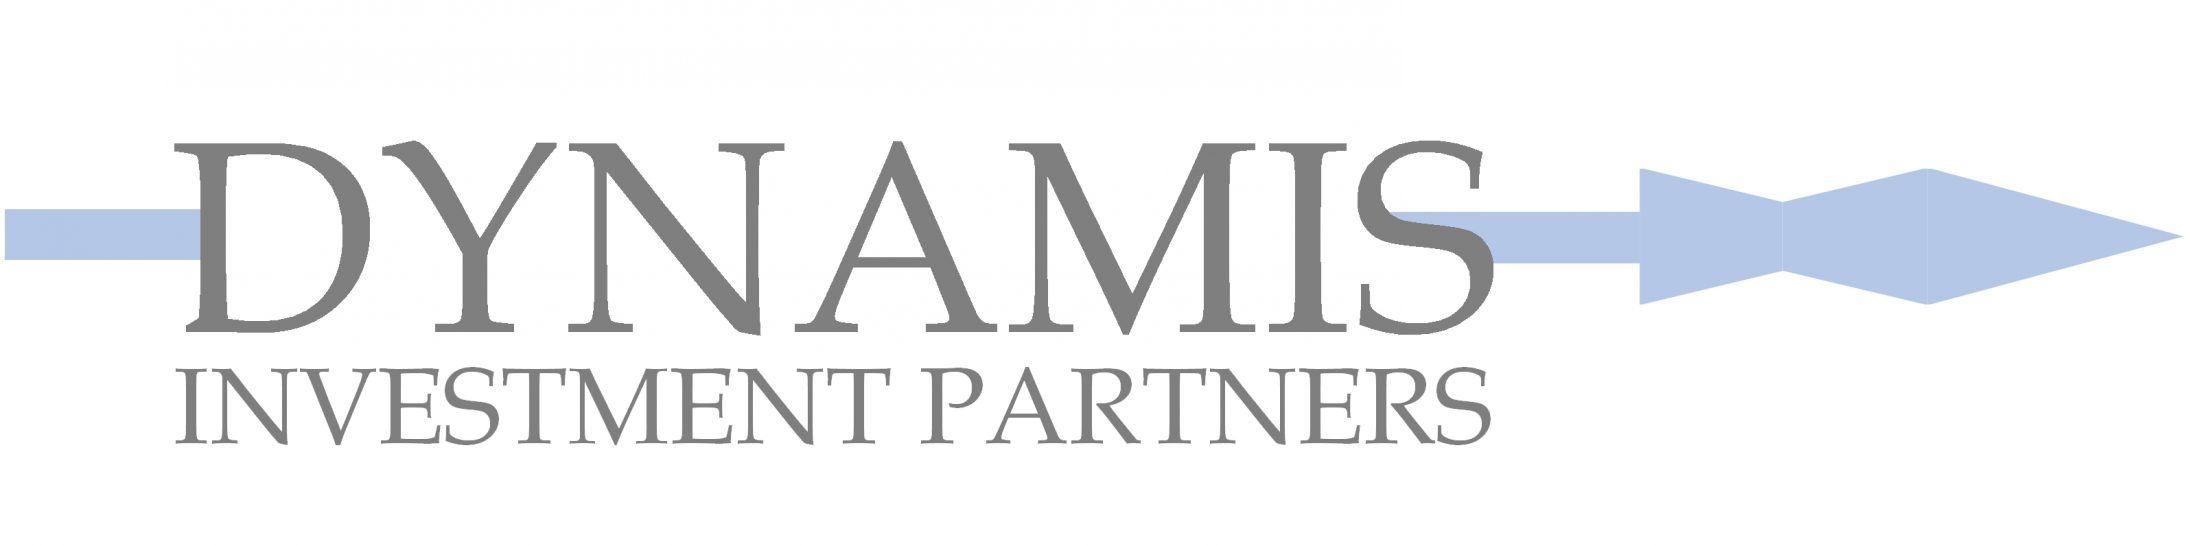 Dynamis Investment Partners Ltd